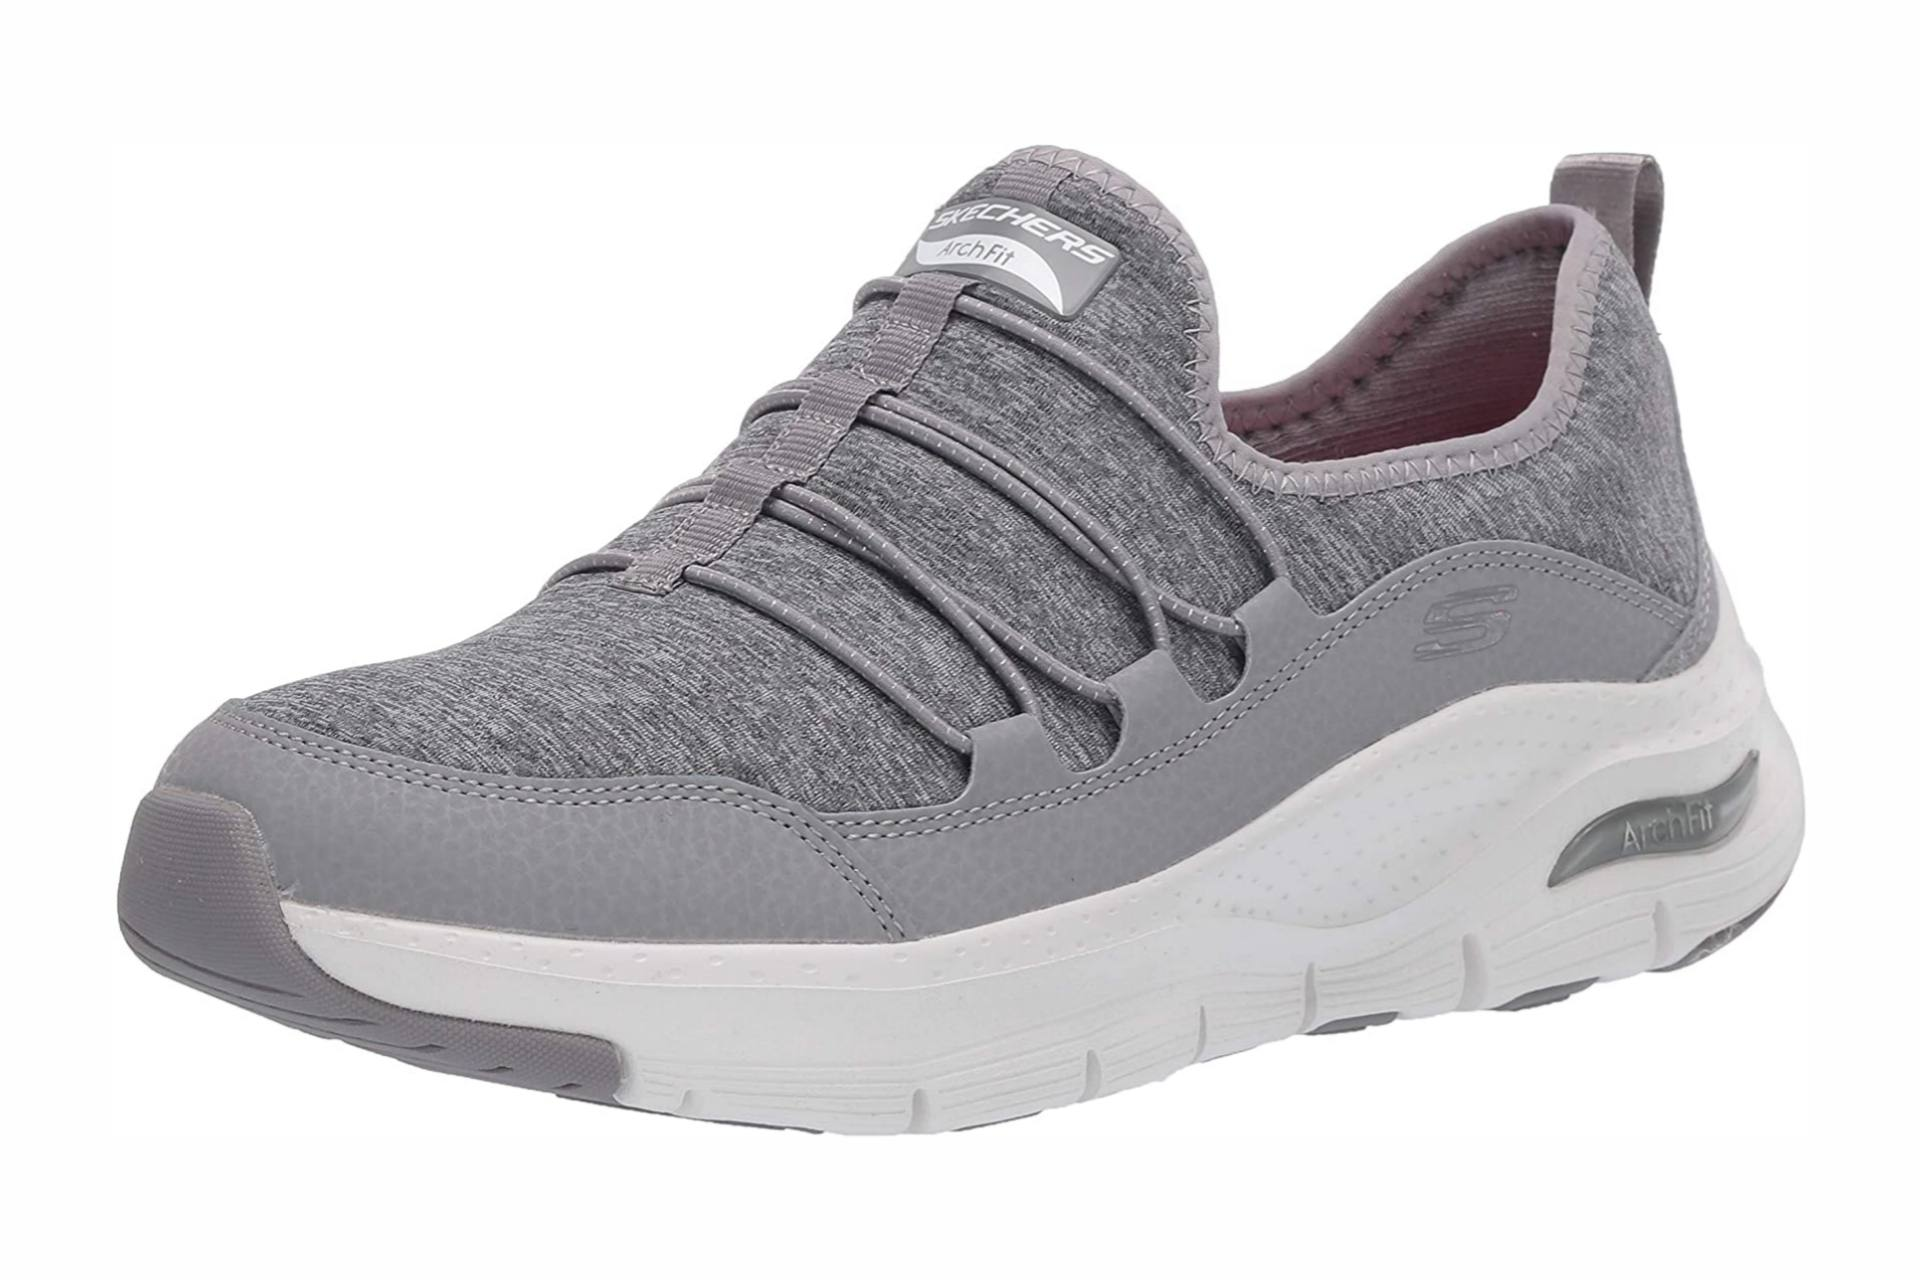 Best skechers Sneakers for arch support